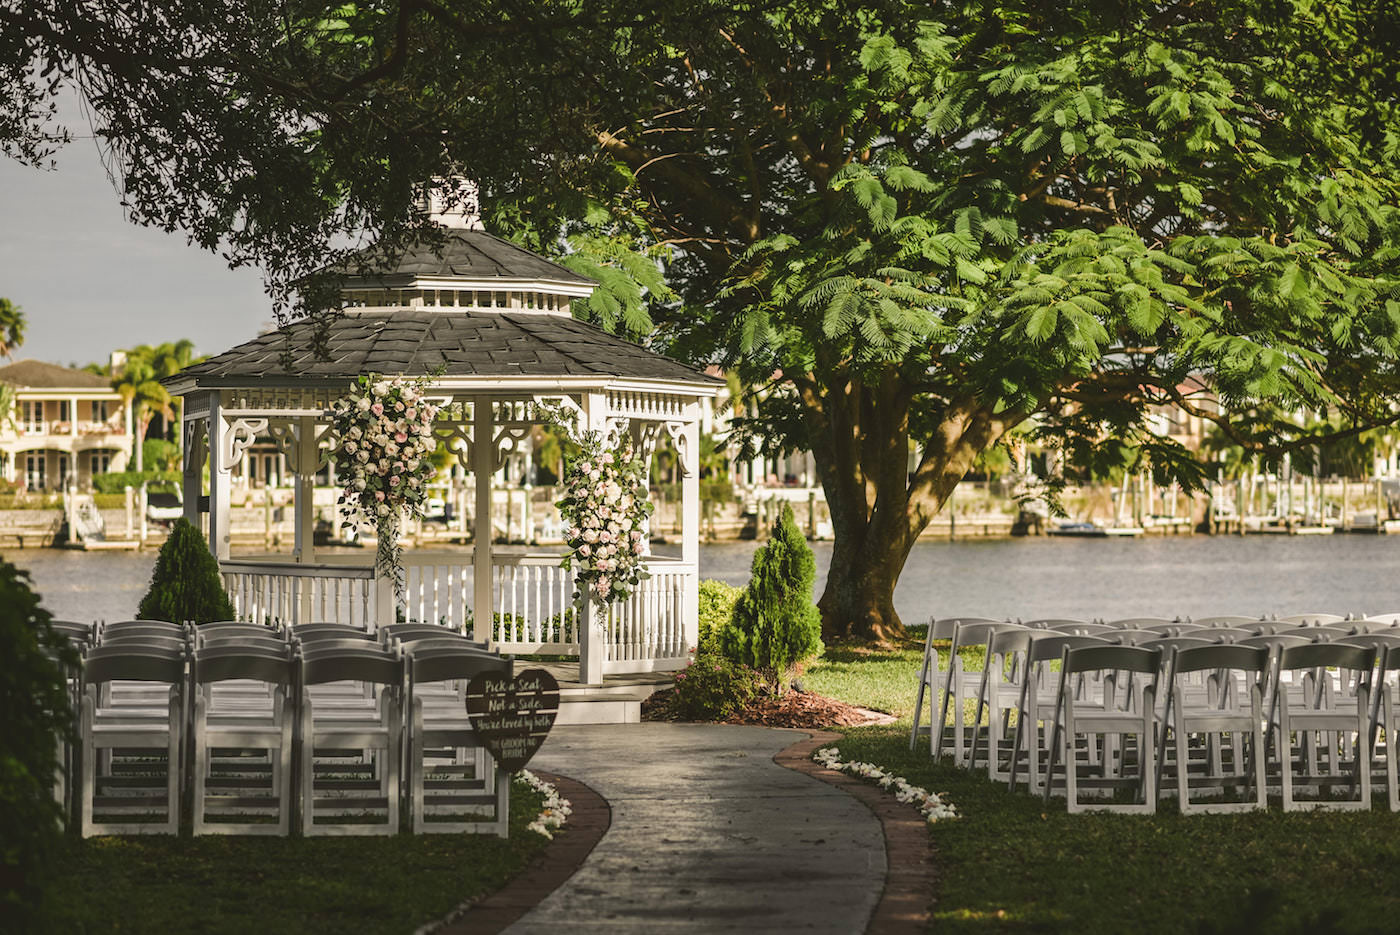 Tampa Wedding Waterfront Garden Ceremony Venue with White and Blush Pink Gazebo Floral Arrangements and White Garden Chairs